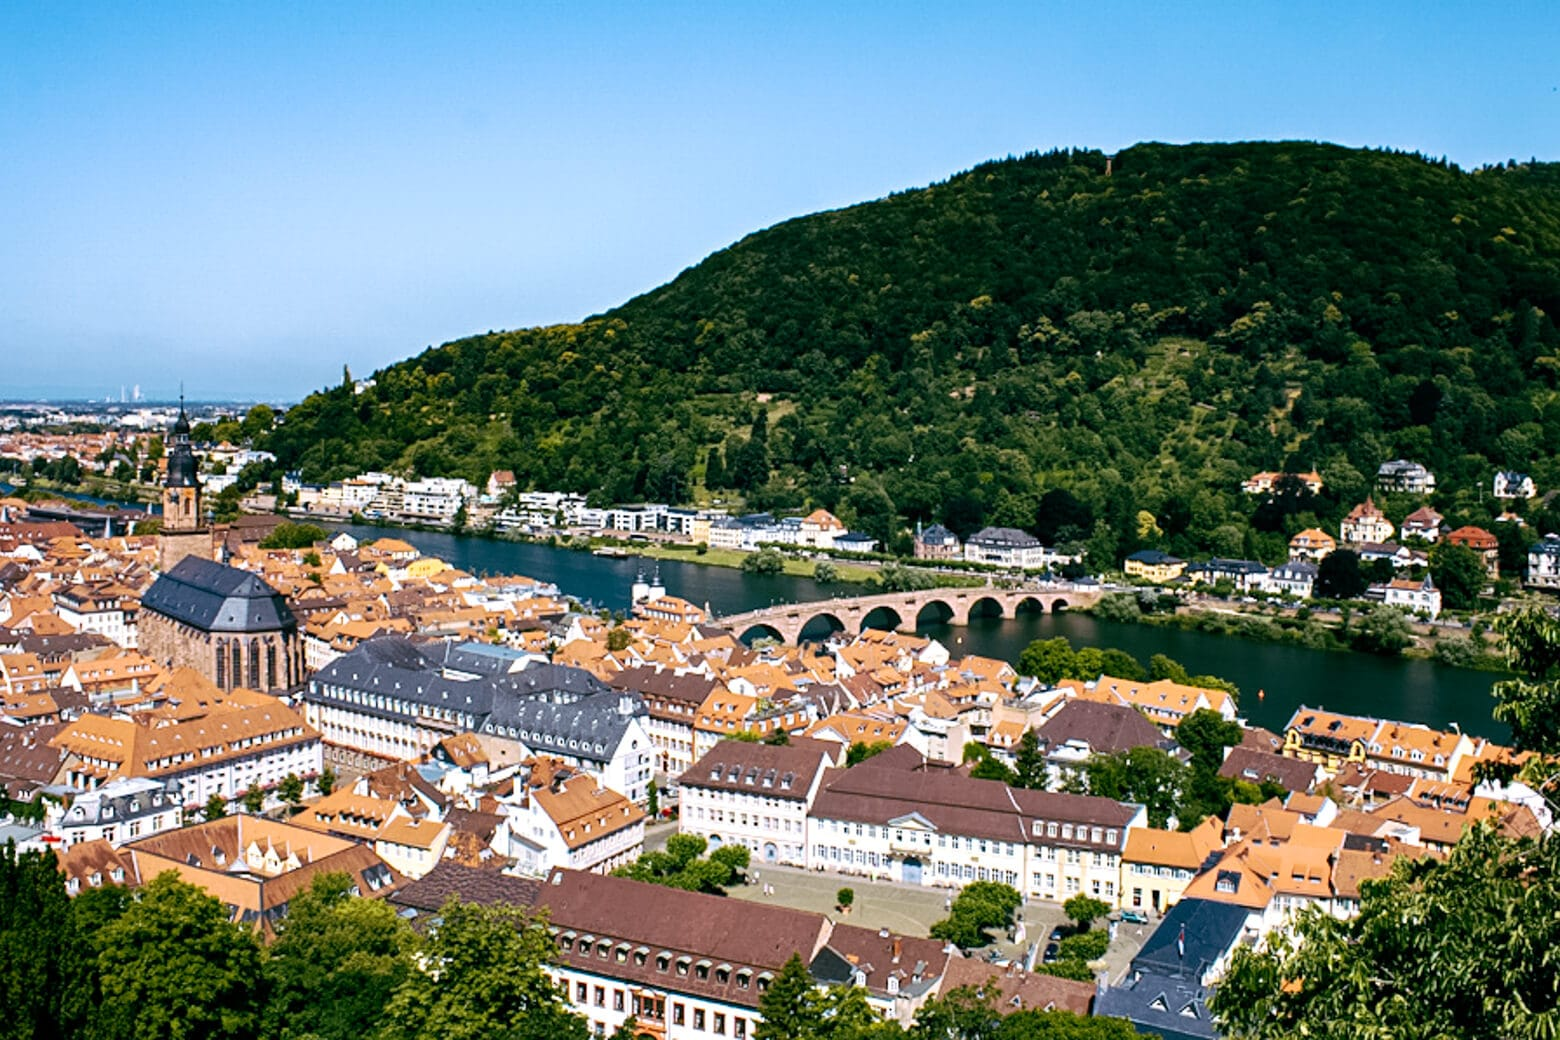 Views from Heidelberg Castle